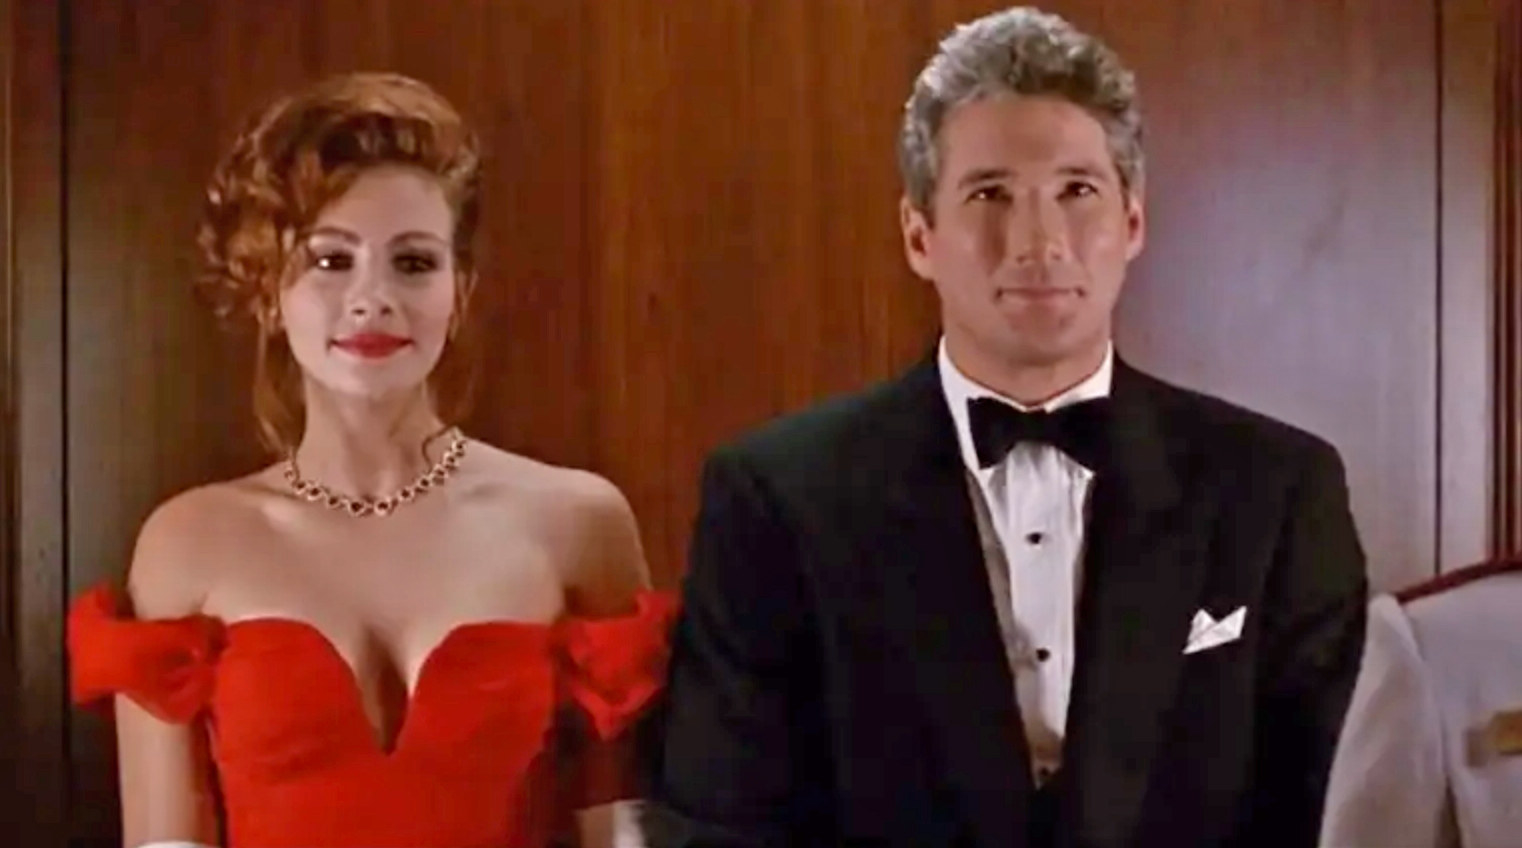 Julia Roberts and Richard Gere stand next to each other wearing fancy clothes as Vivian and Edward